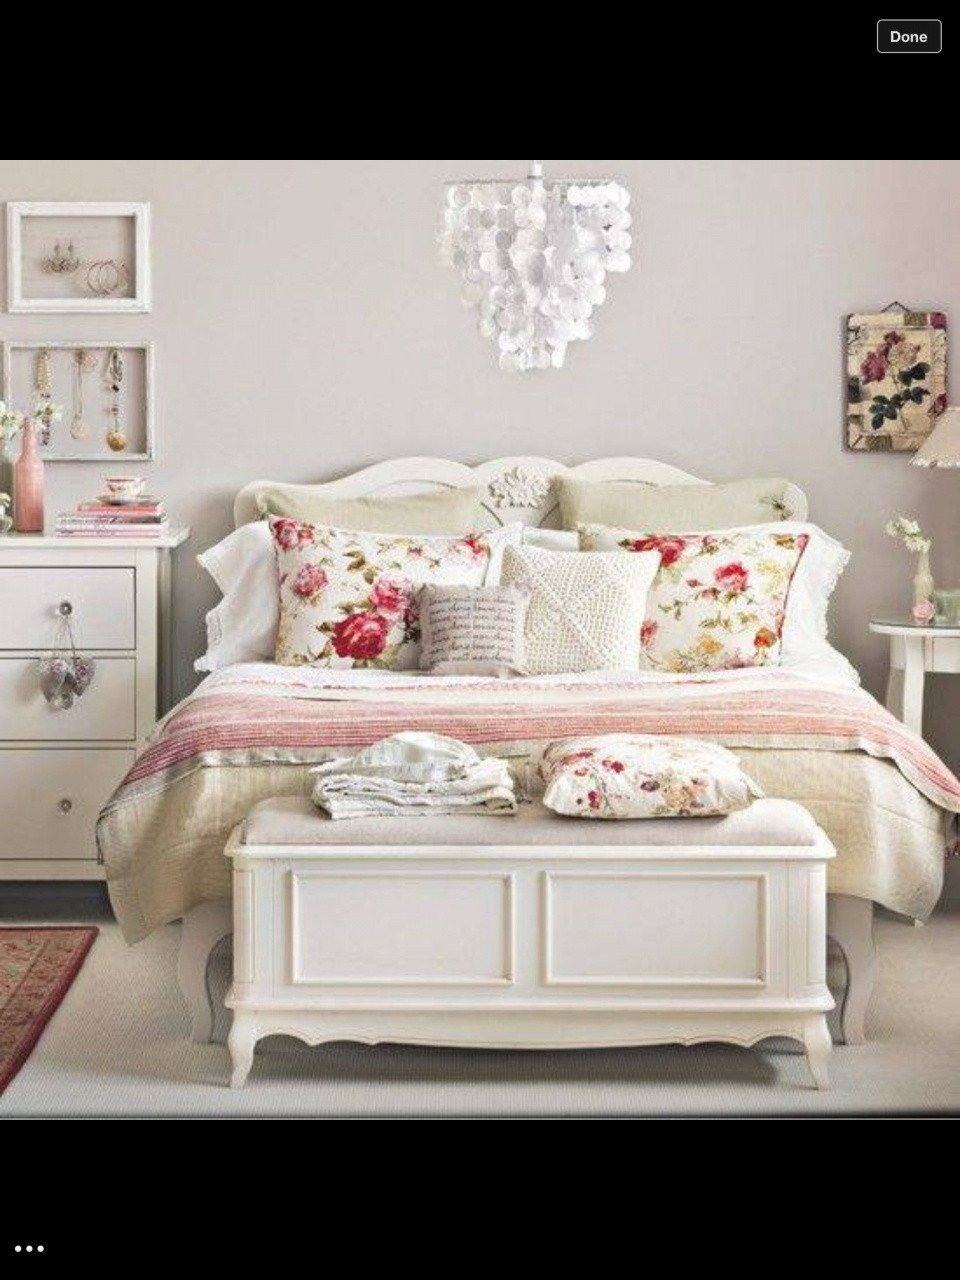 Shabby Chic Bedroom Decor Awesome ashley Furniture Canopy Bedroom Sets – Bunk Bed Ideas From